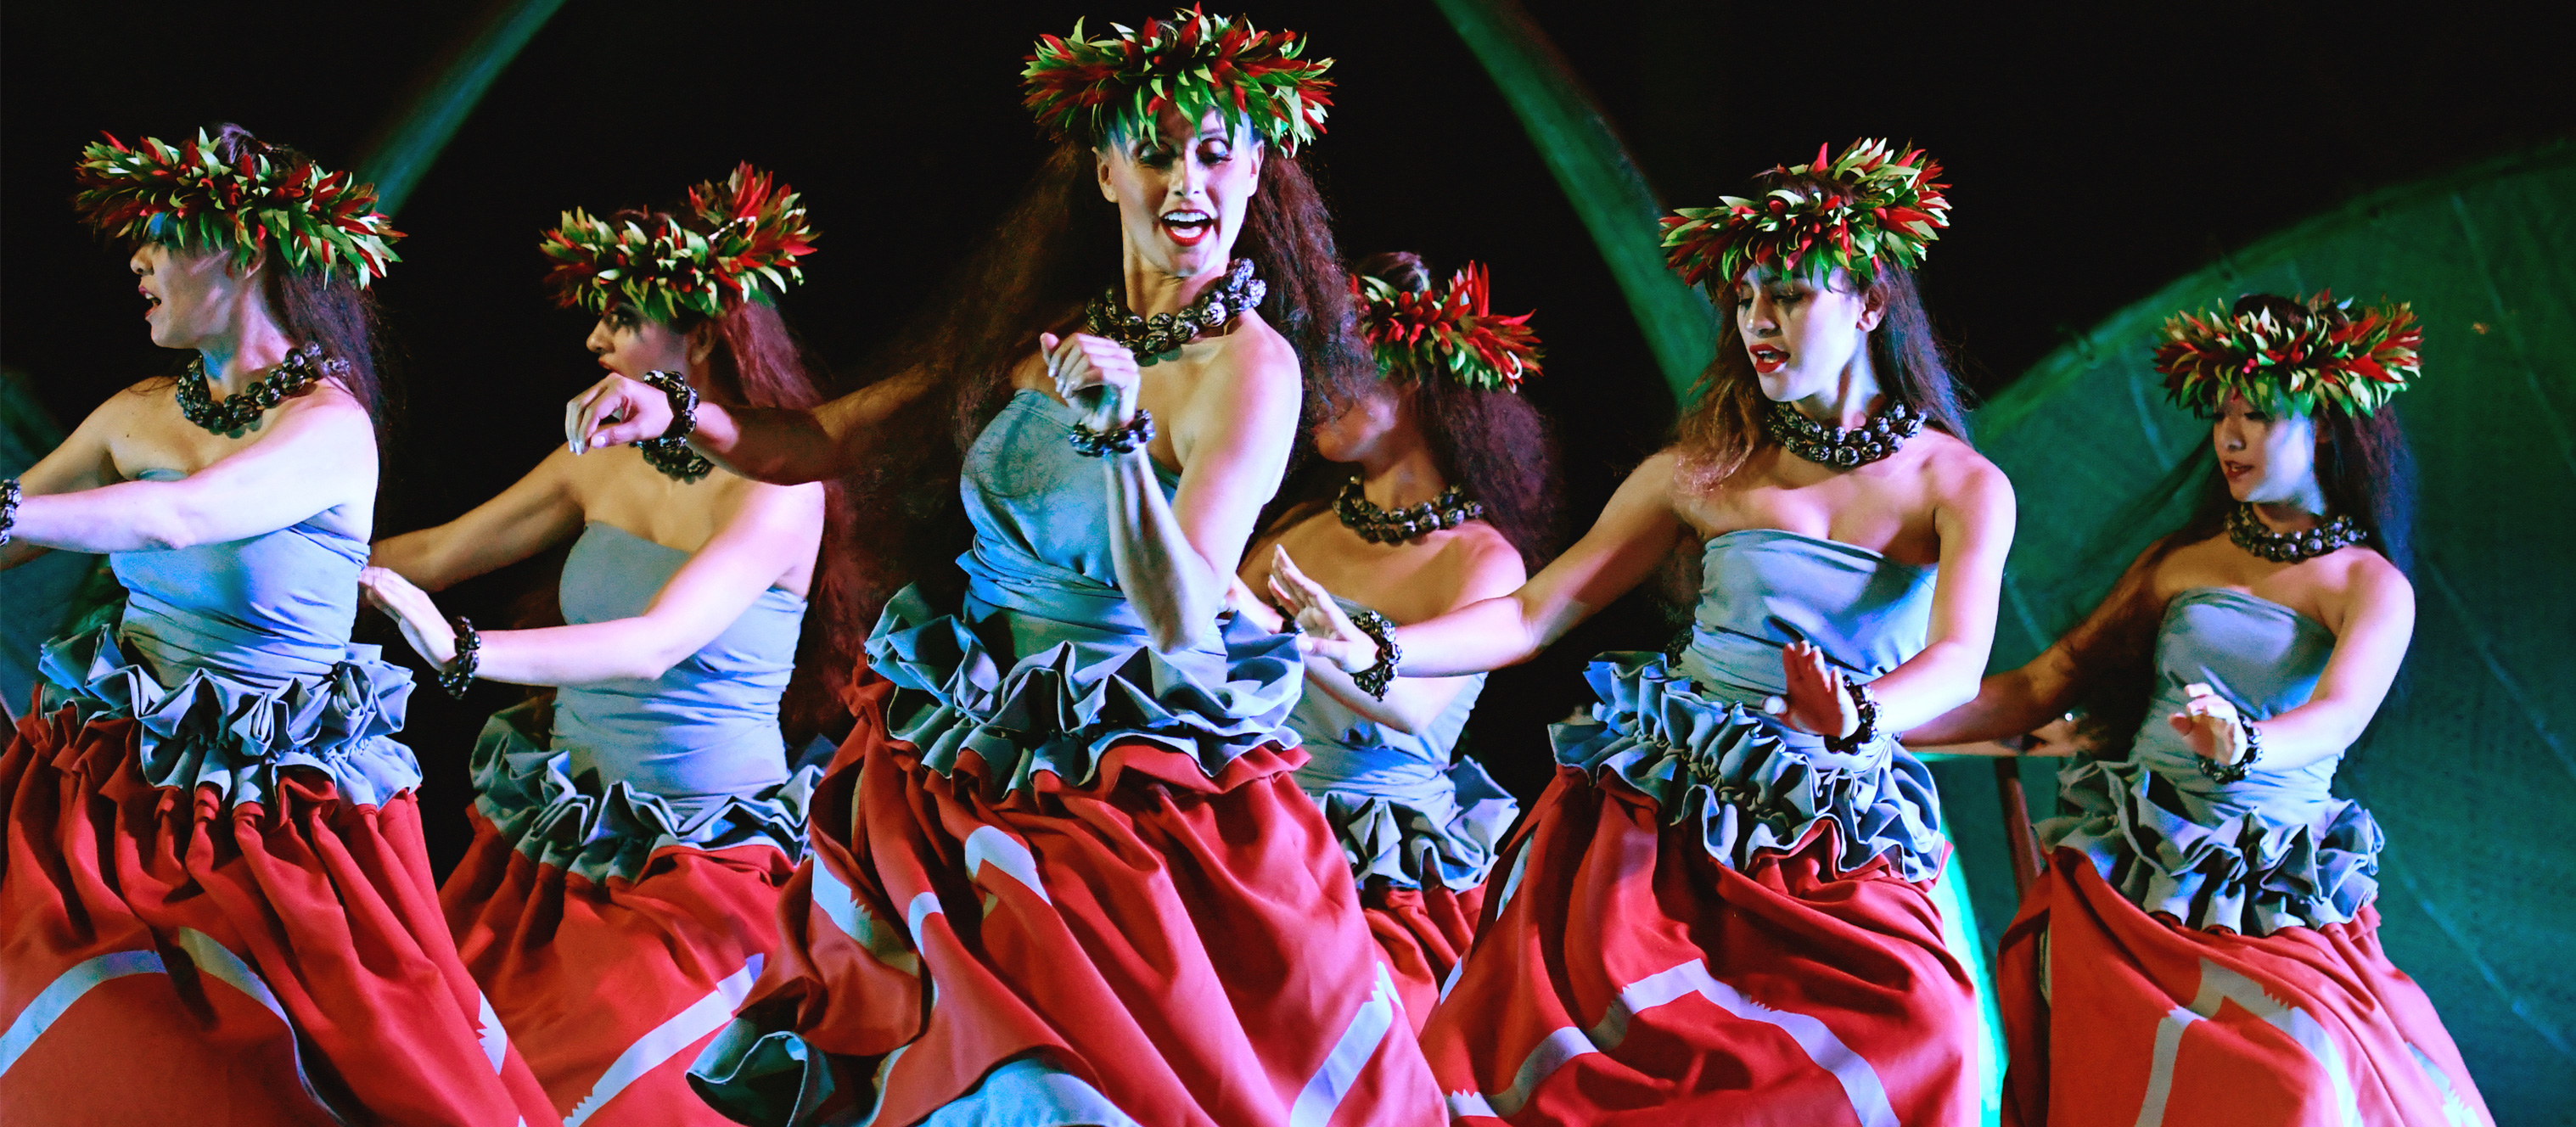 A group of Hawaiian women in traditional outfits and leafy head dresses perform an island dance at the Ka Wa'a Luau.